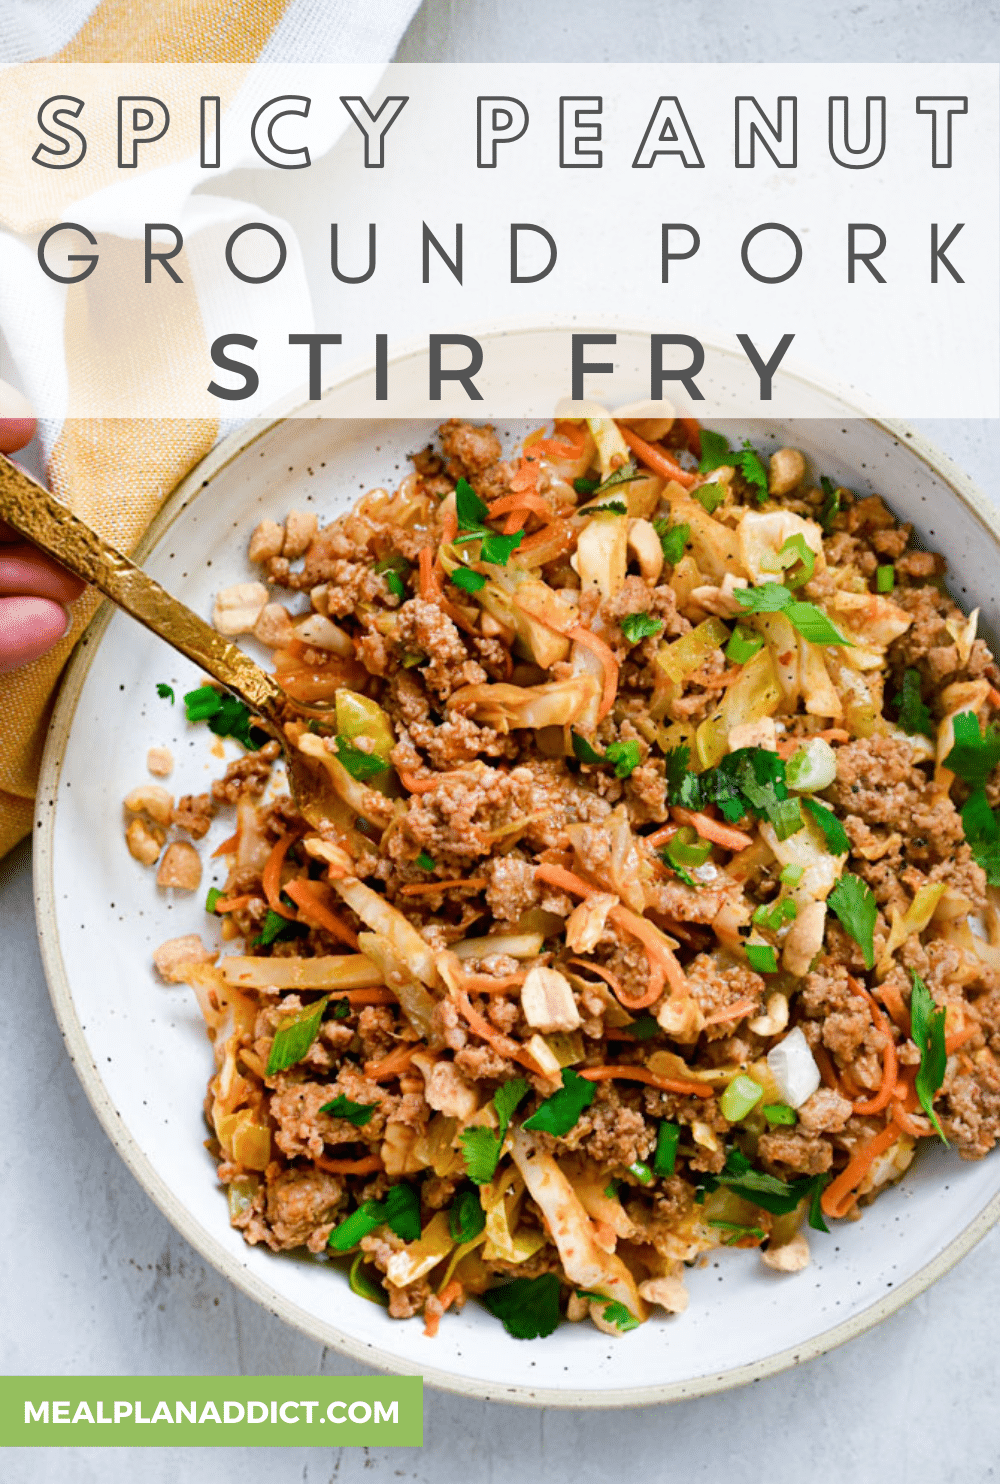 Spicy Peanut Ground Pork Stir Fry